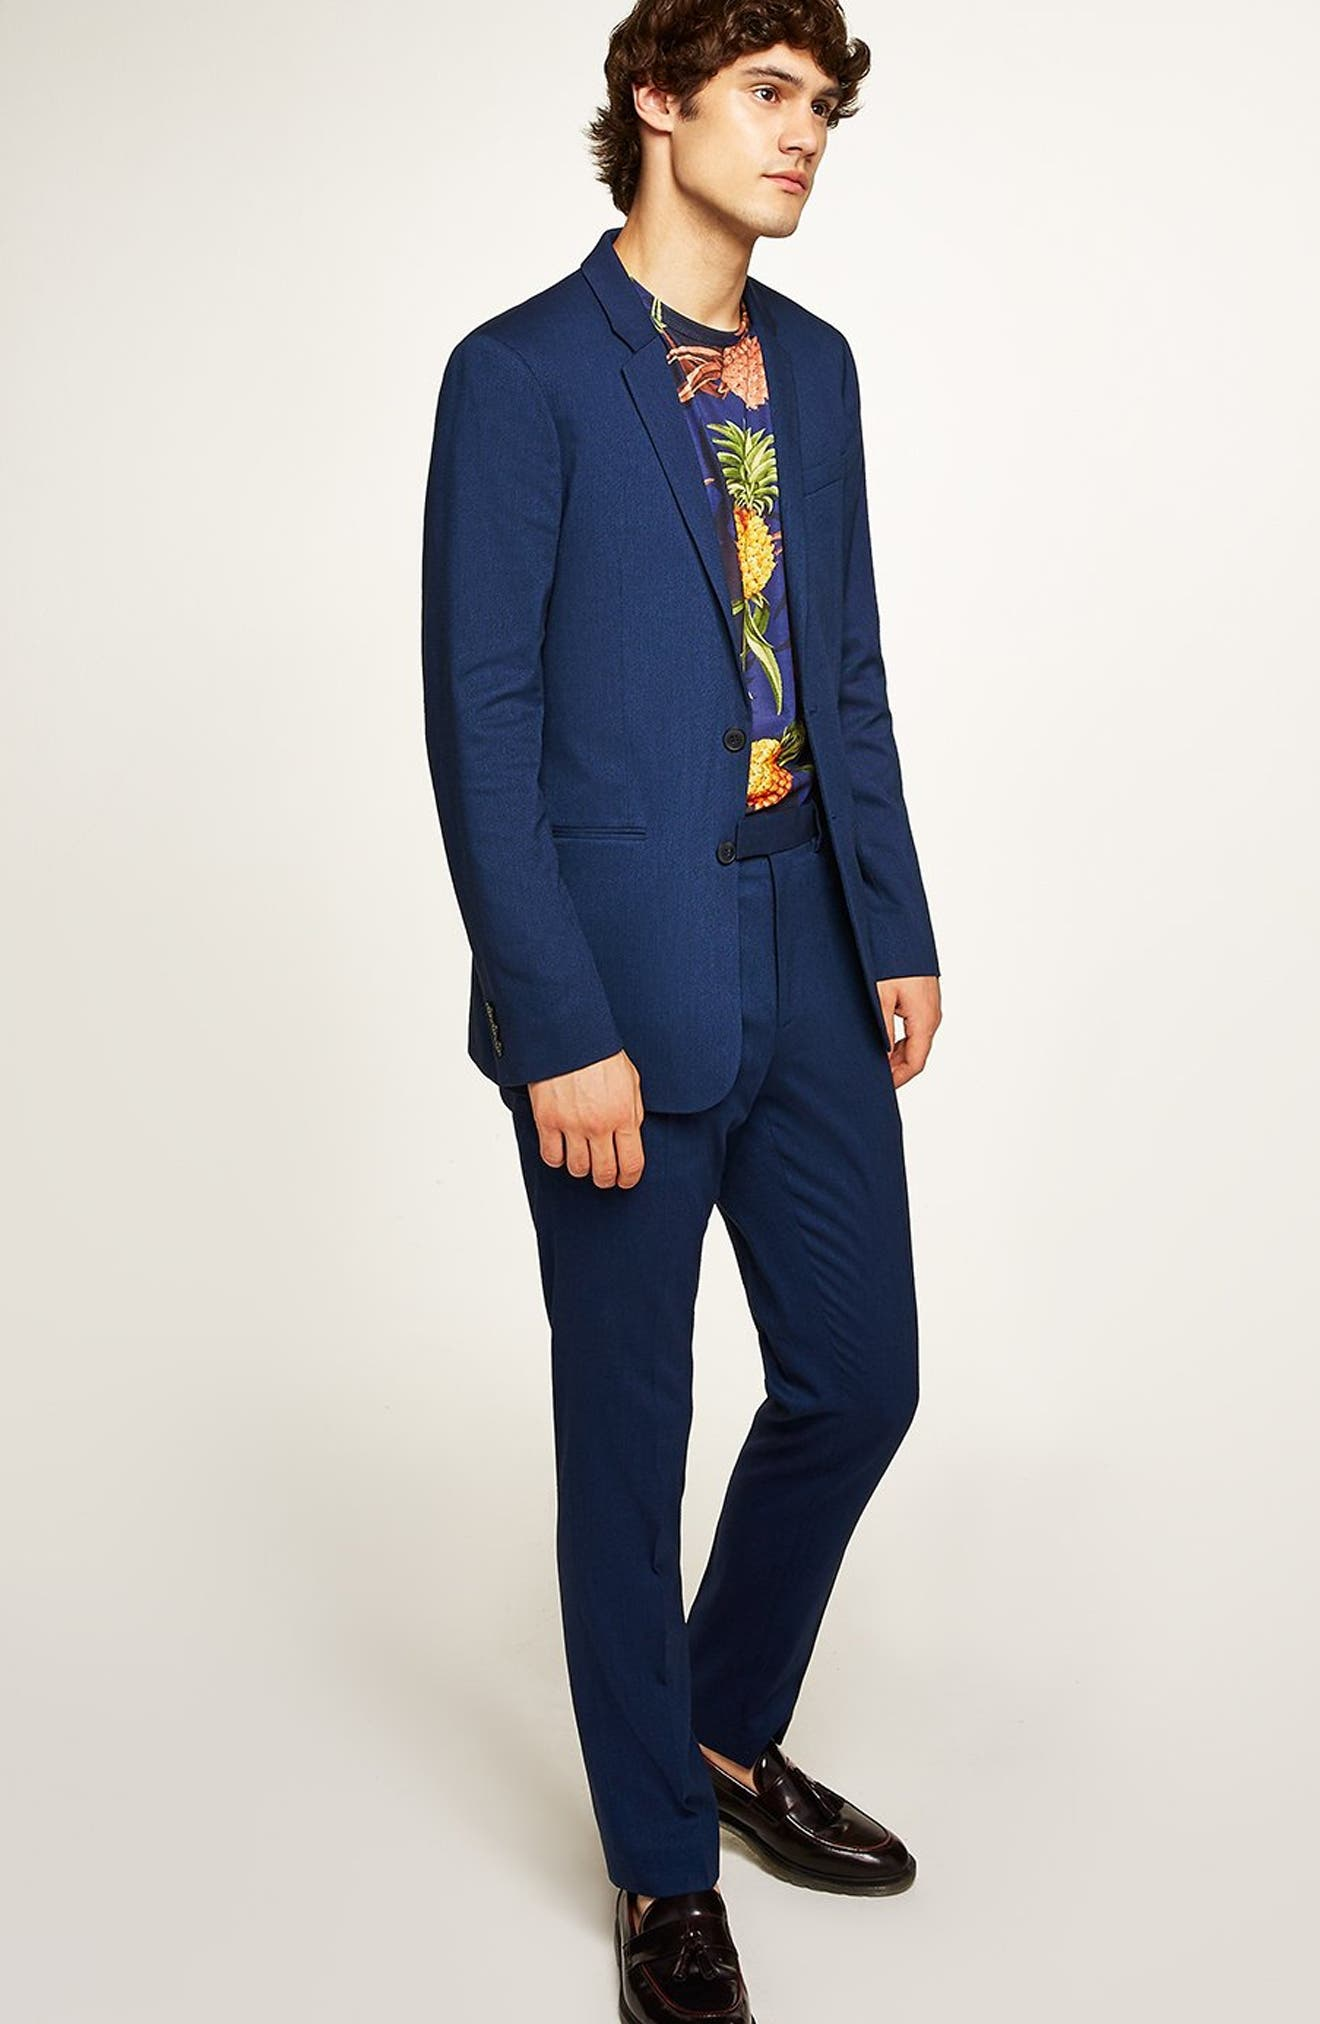 TOPMAN, Skinny Fit Suit Pants, Alternate thumbnail 8, color, MID BLUE